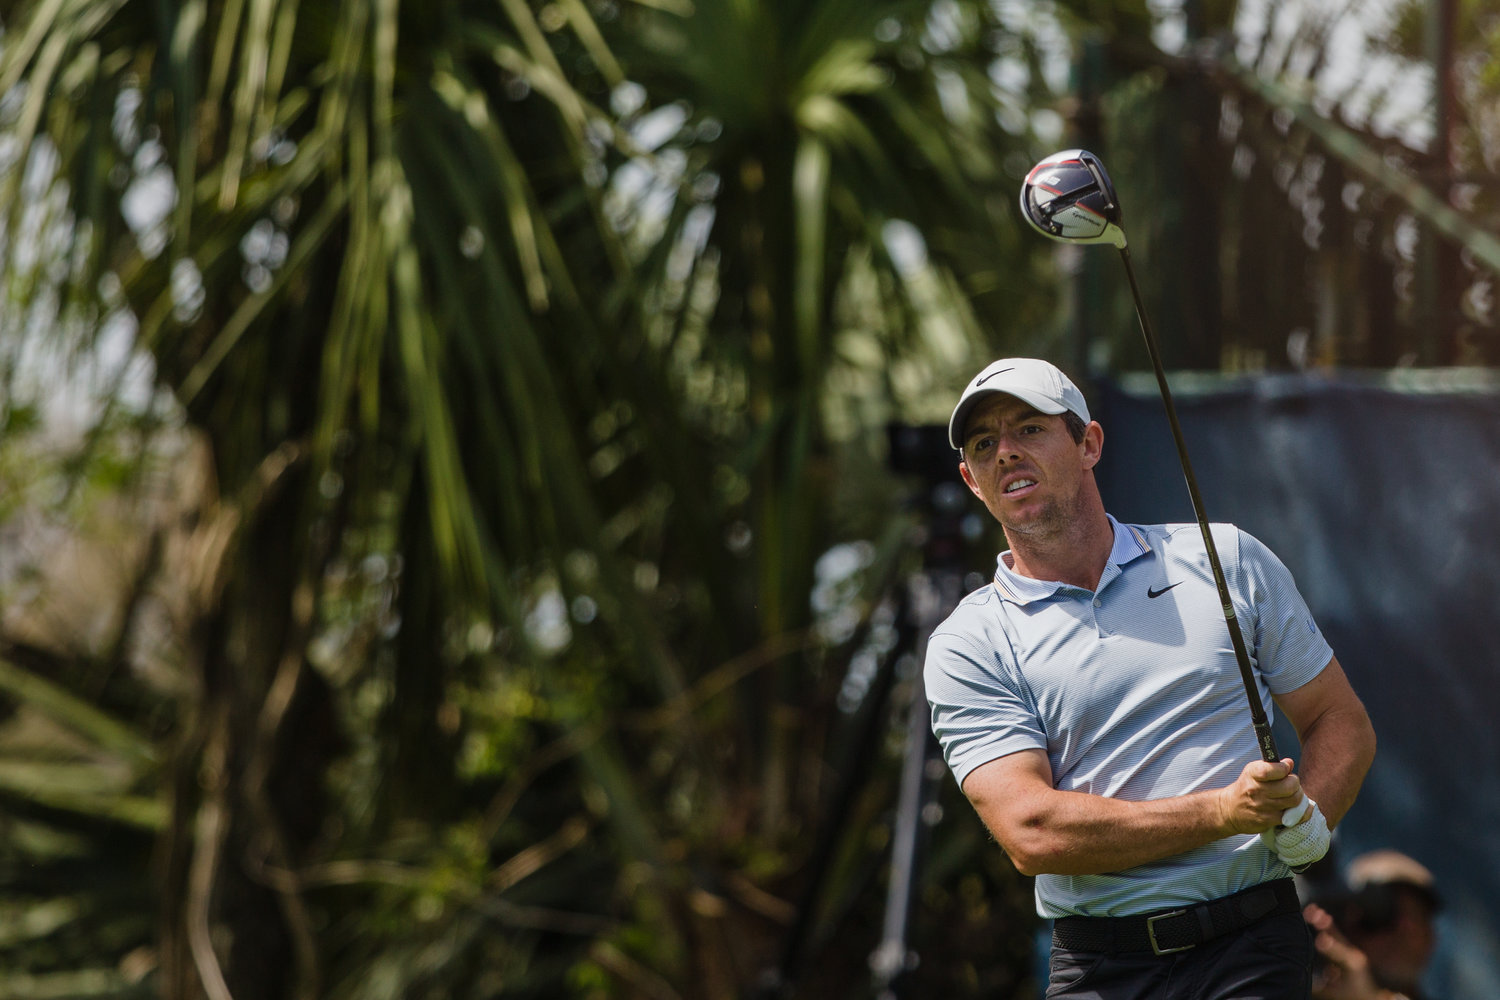 Rory McIlroy watches his shot soar down the fairway. He's in fifth place at 5-under par after one round at THE PLAYERS.